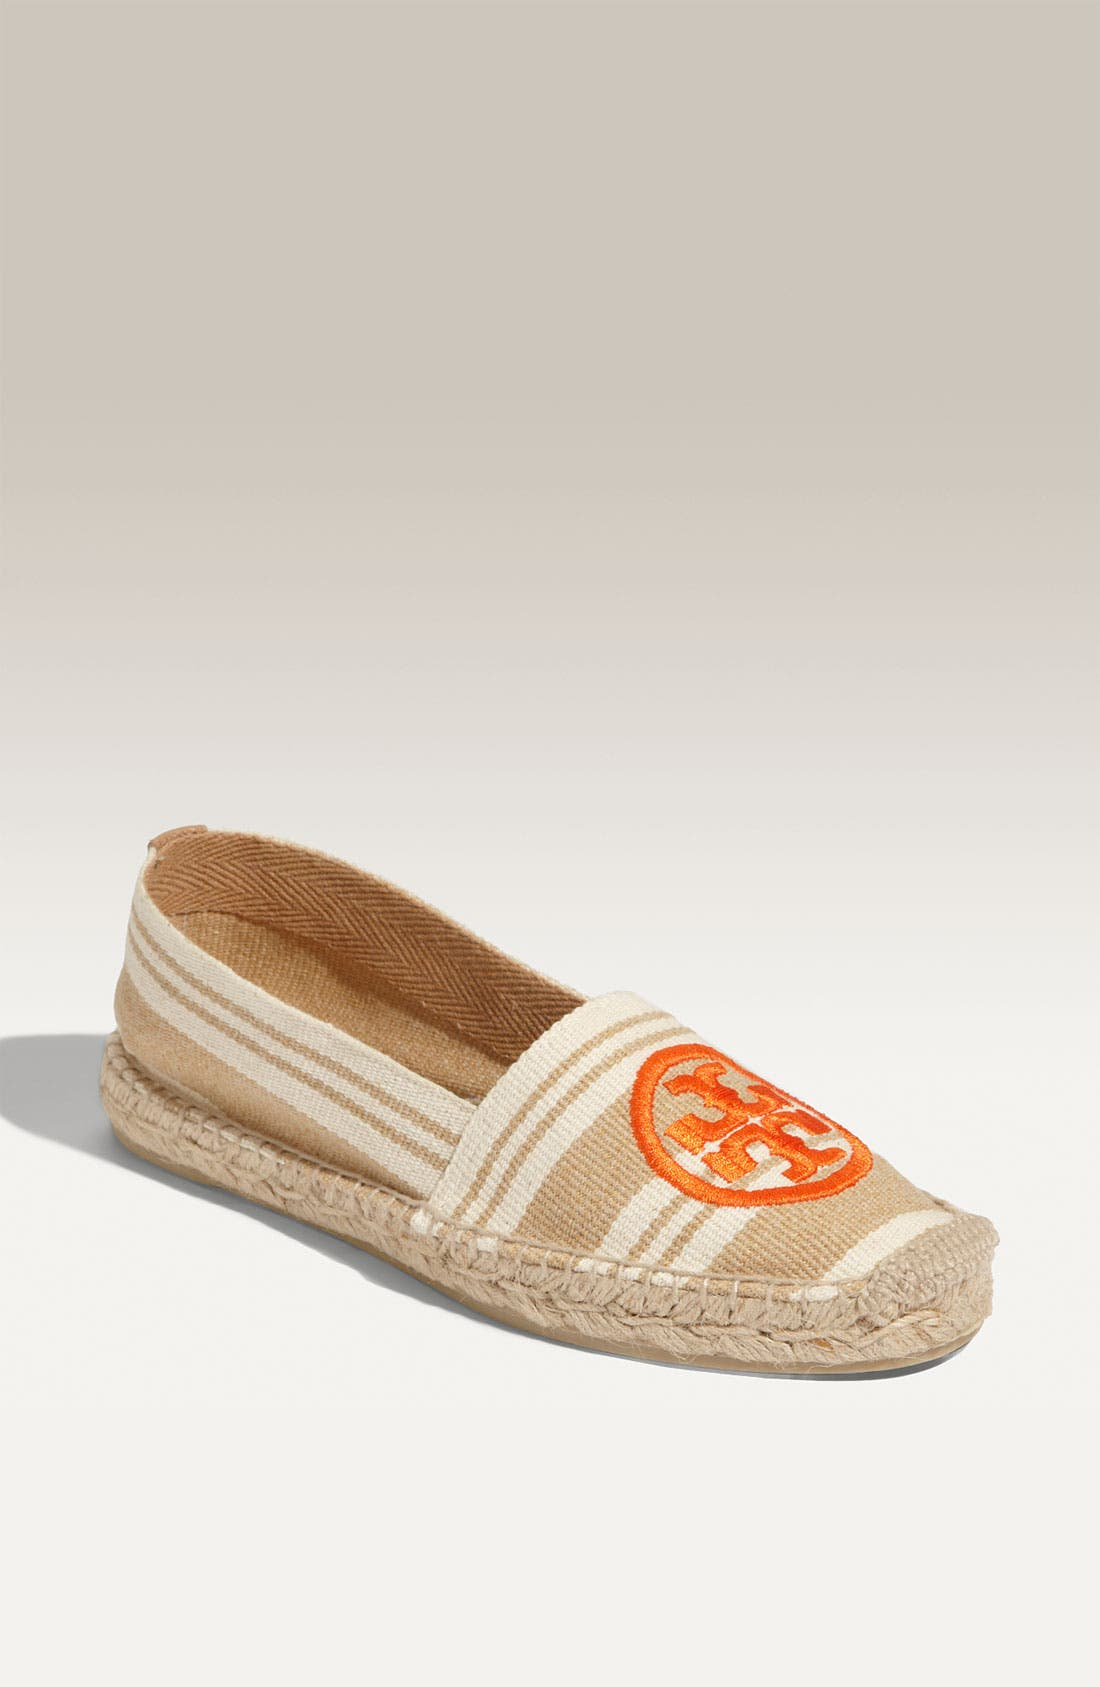 Alternate Image 1 Selected - Tory Burch Stripe Espadrille